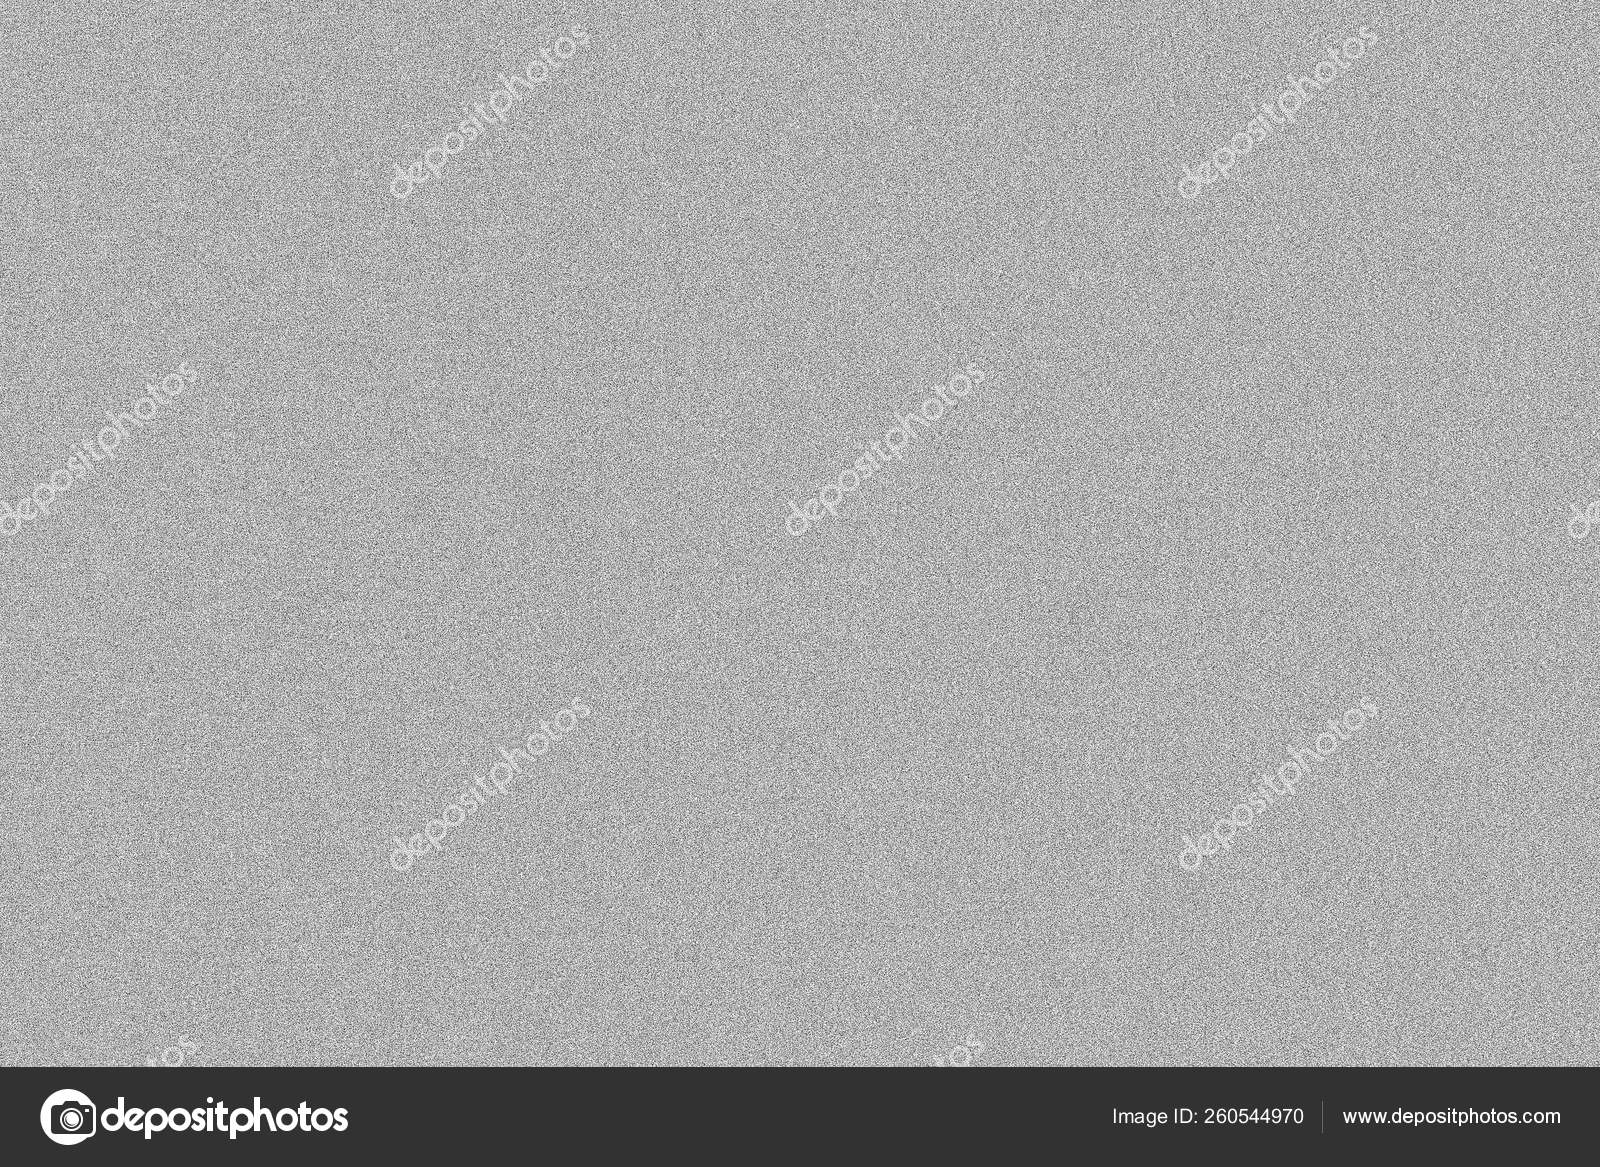 White noise  Background effect with sound effect and grain  Dist